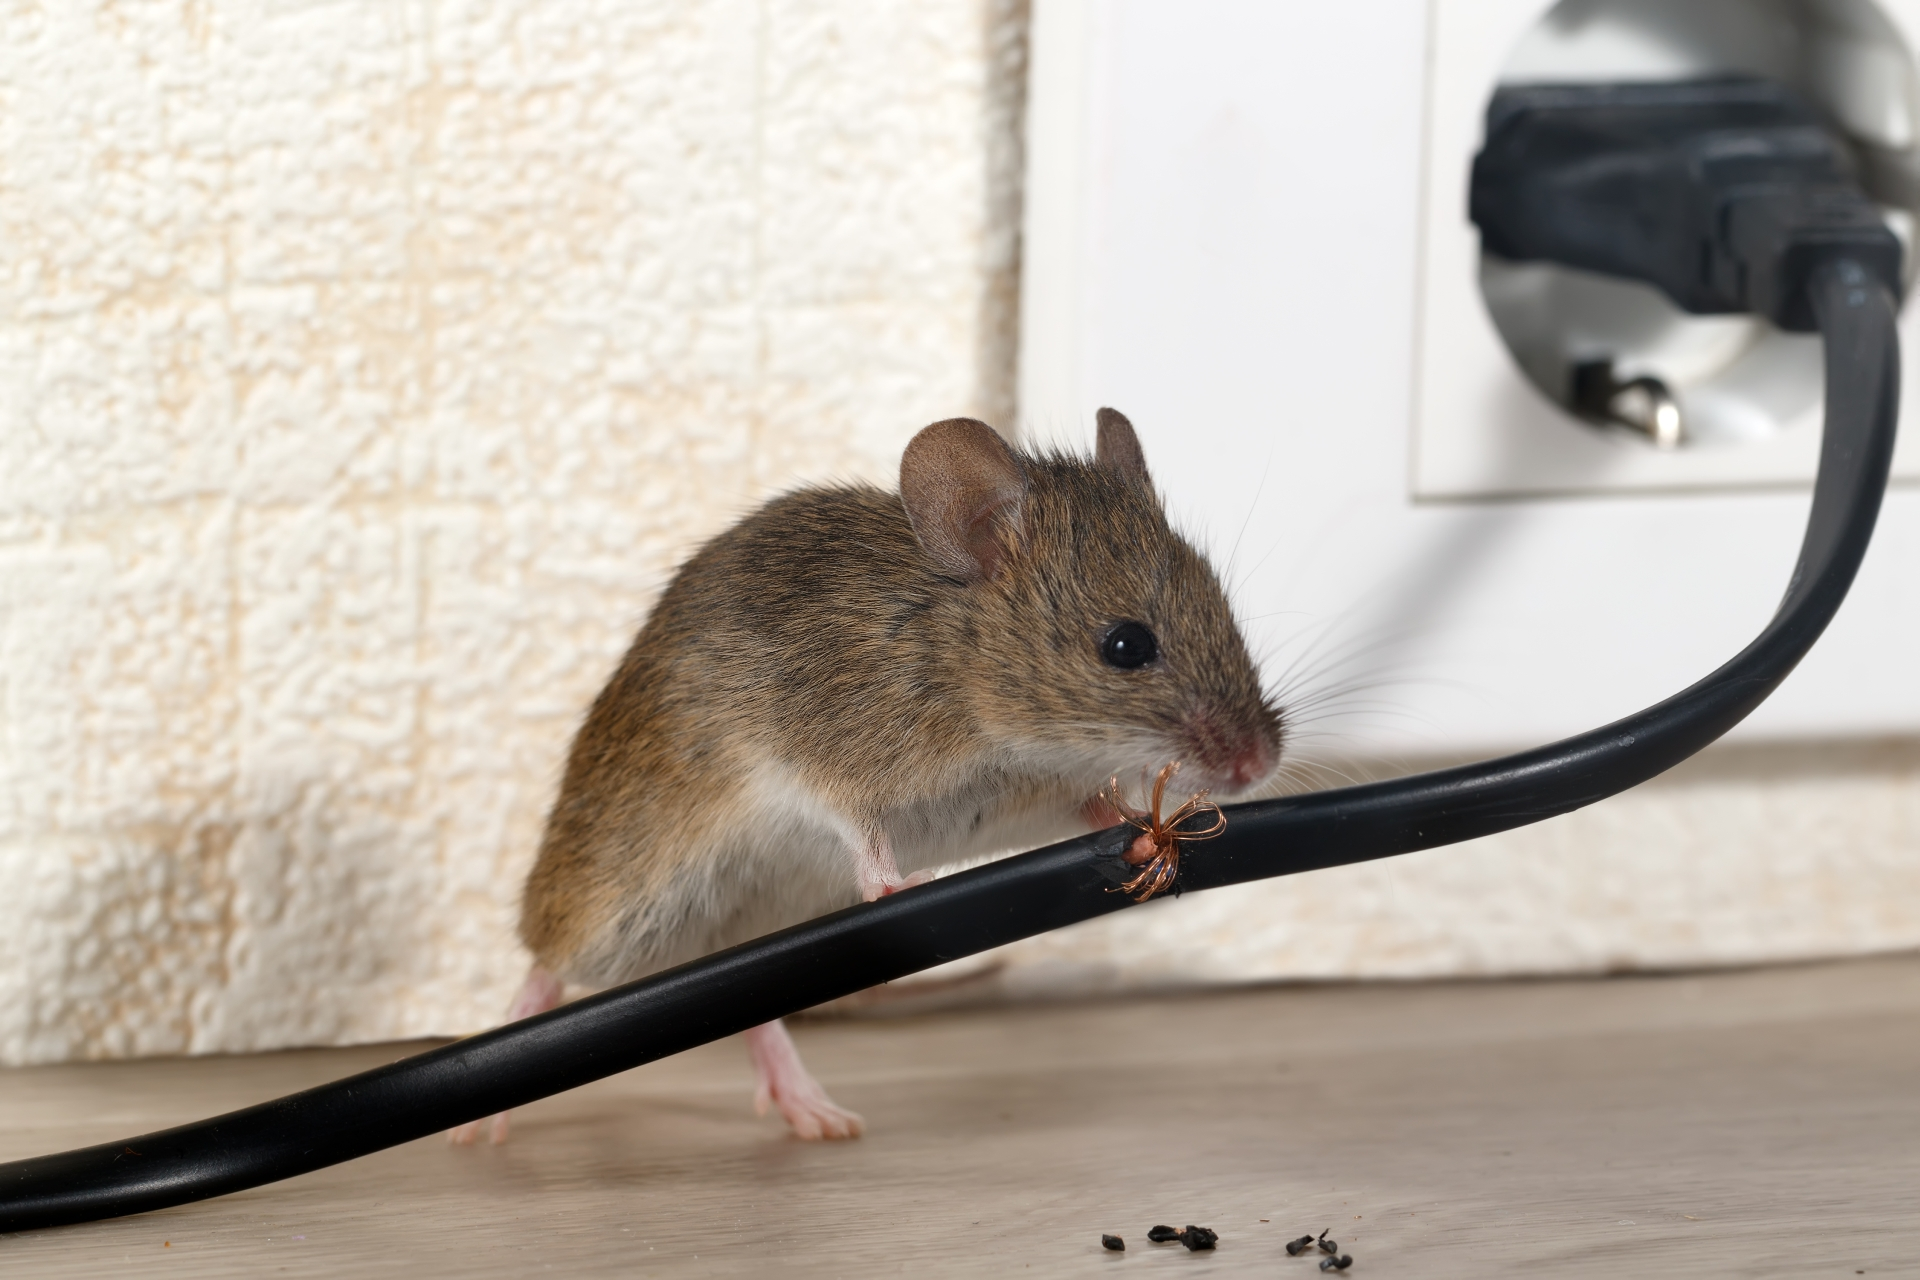 Mice Infestation, Pest Control in Twickenham, St. Margarets, TW1, TW2. Call Now 020 8166 9746